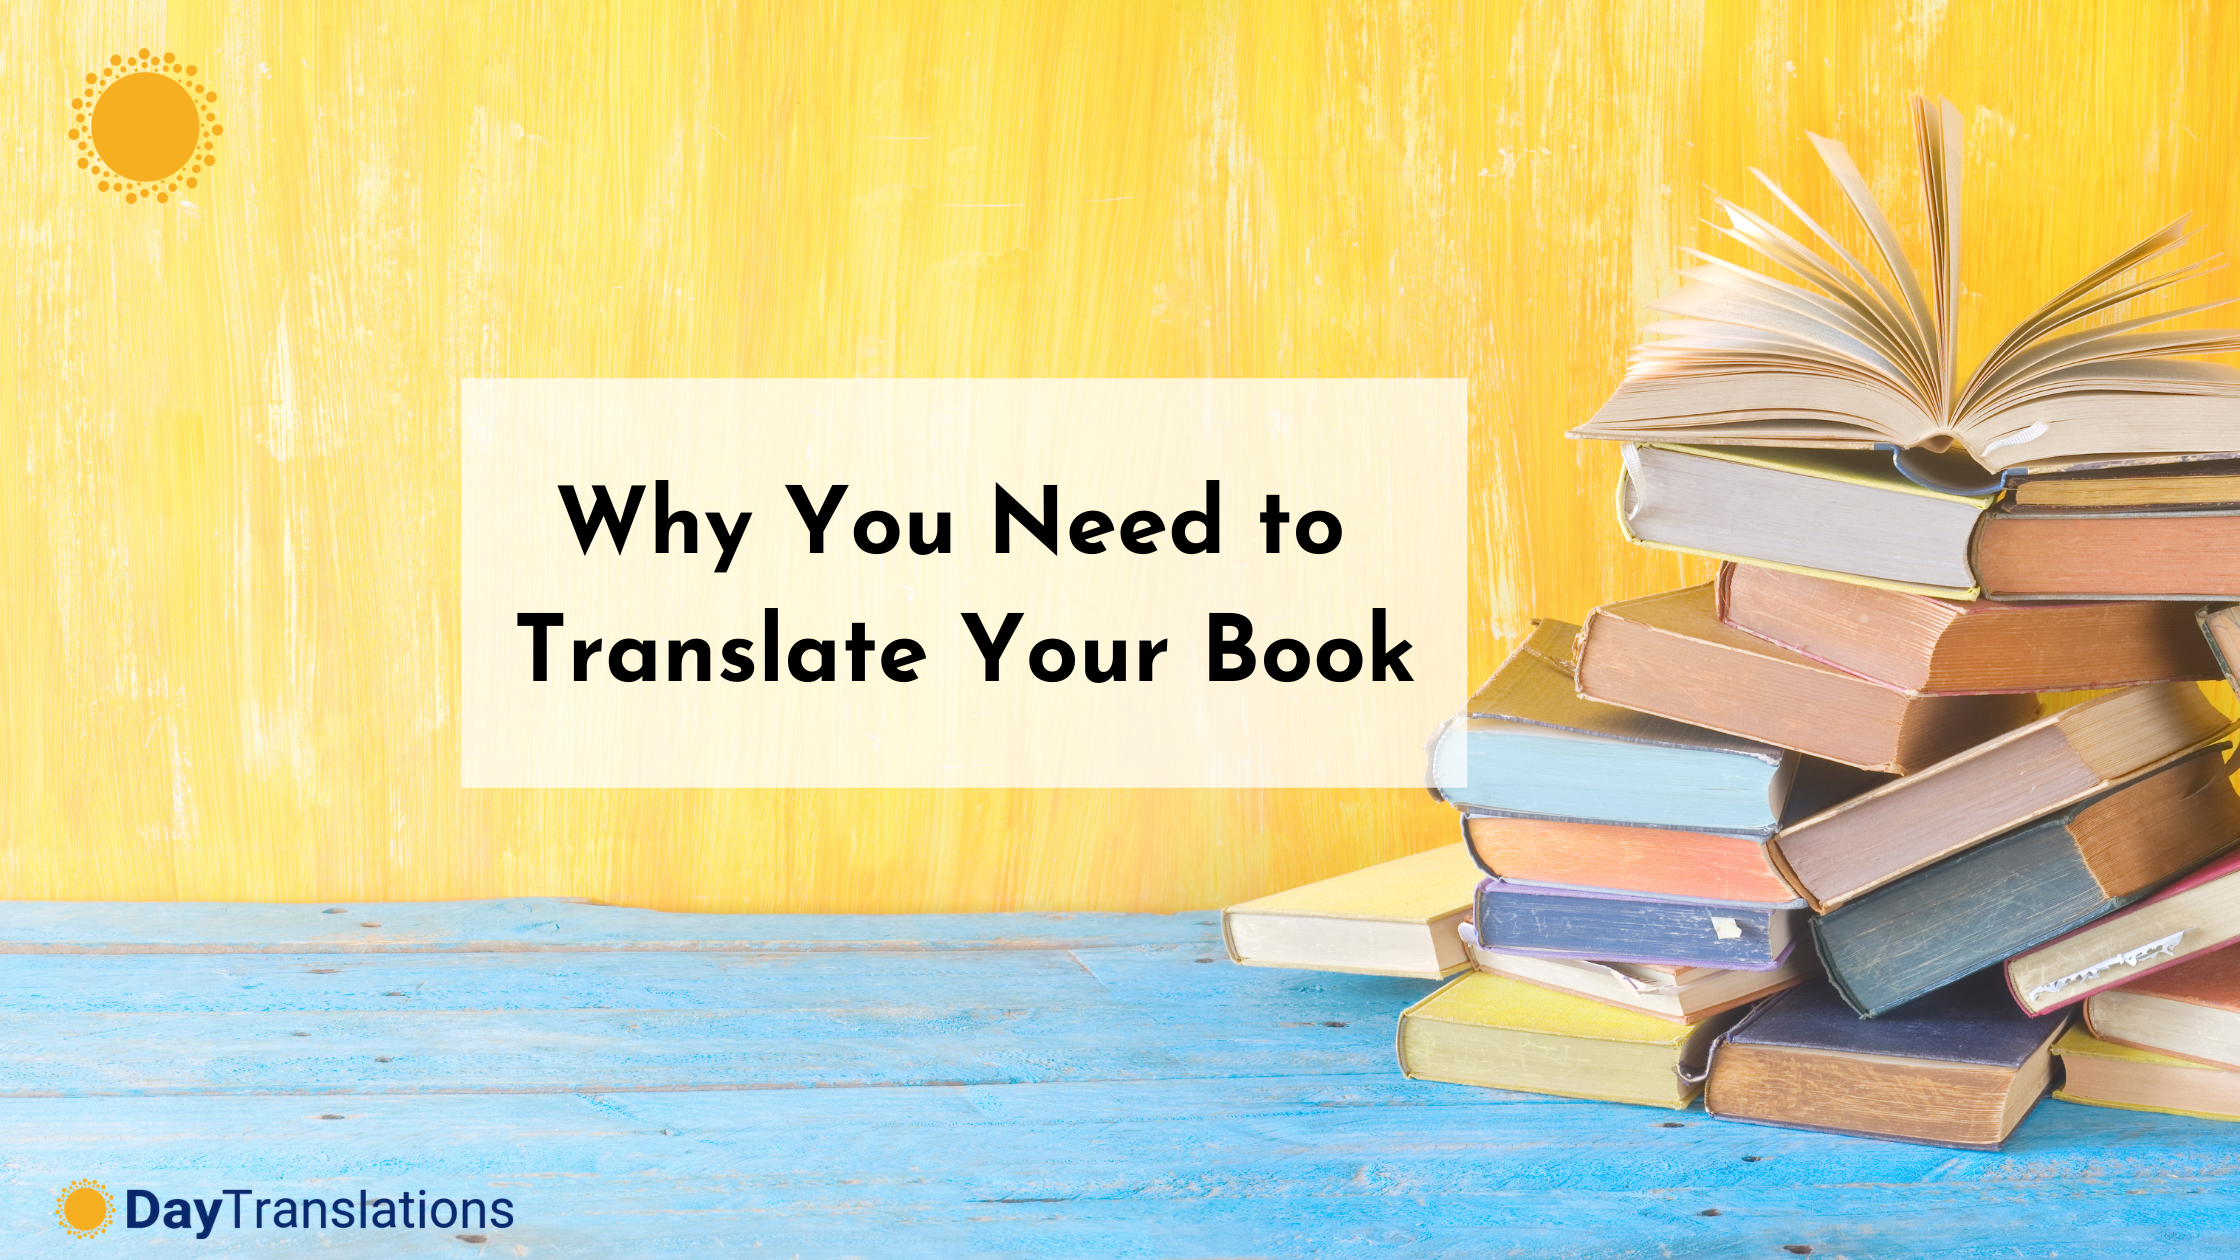 Why You Need to Translate Your Book